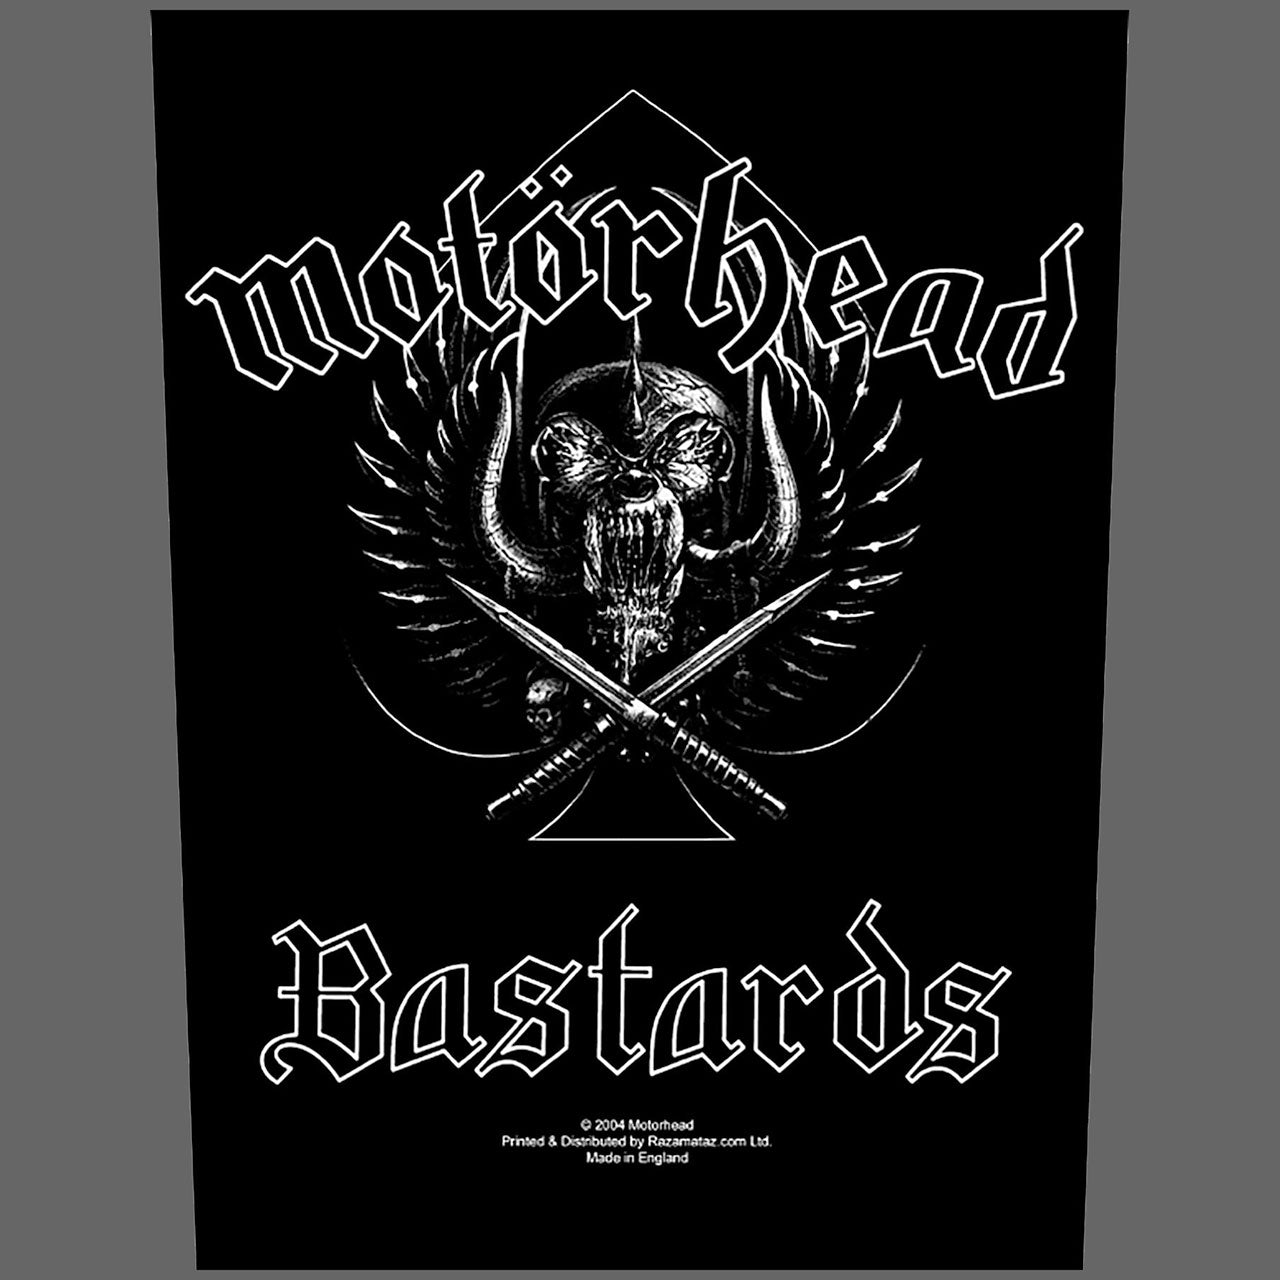 Motorhead - Bastards (Backpatch)